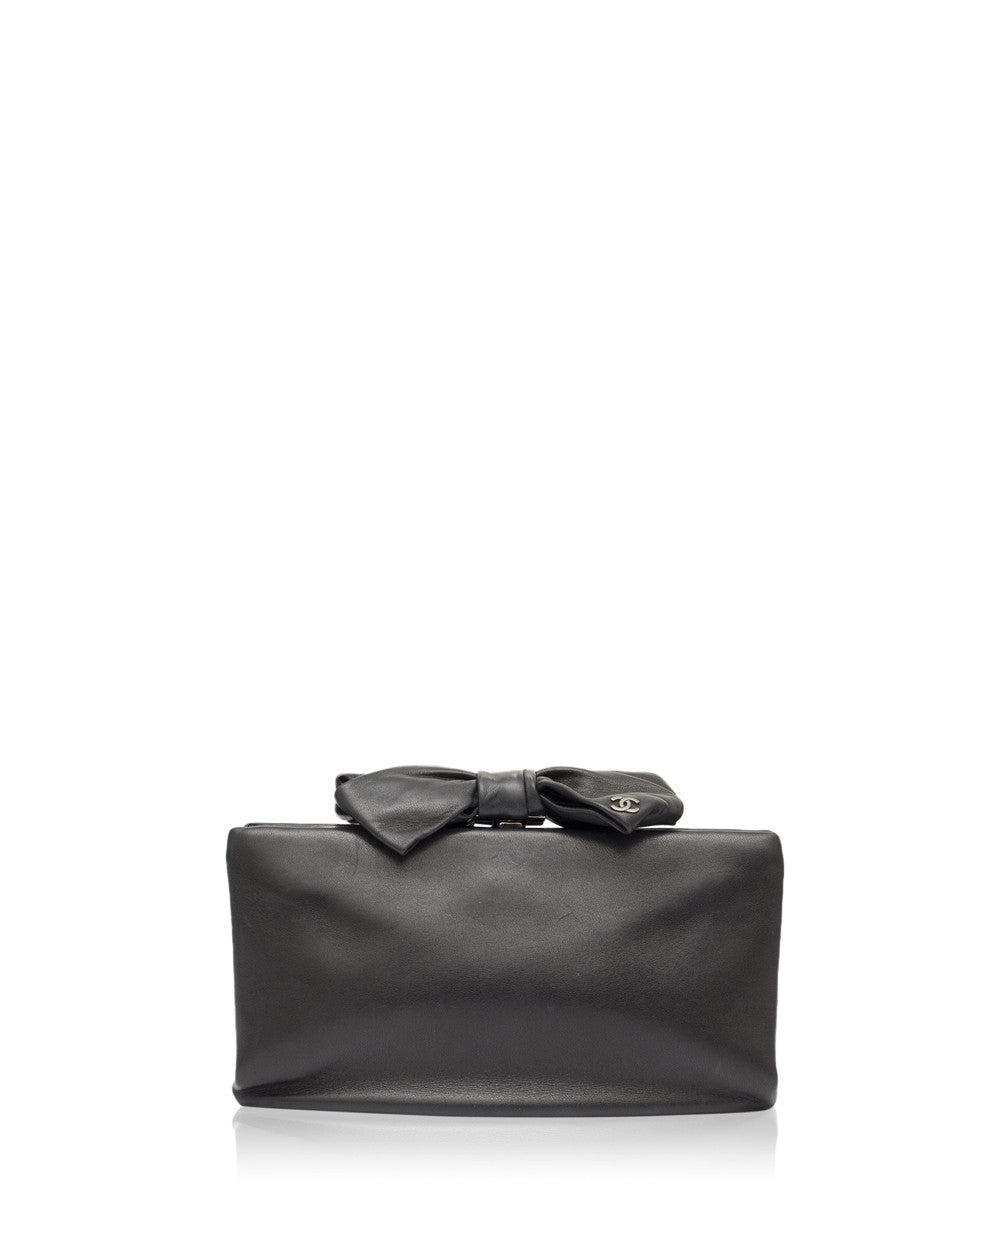 Black Leather Bow Clutch